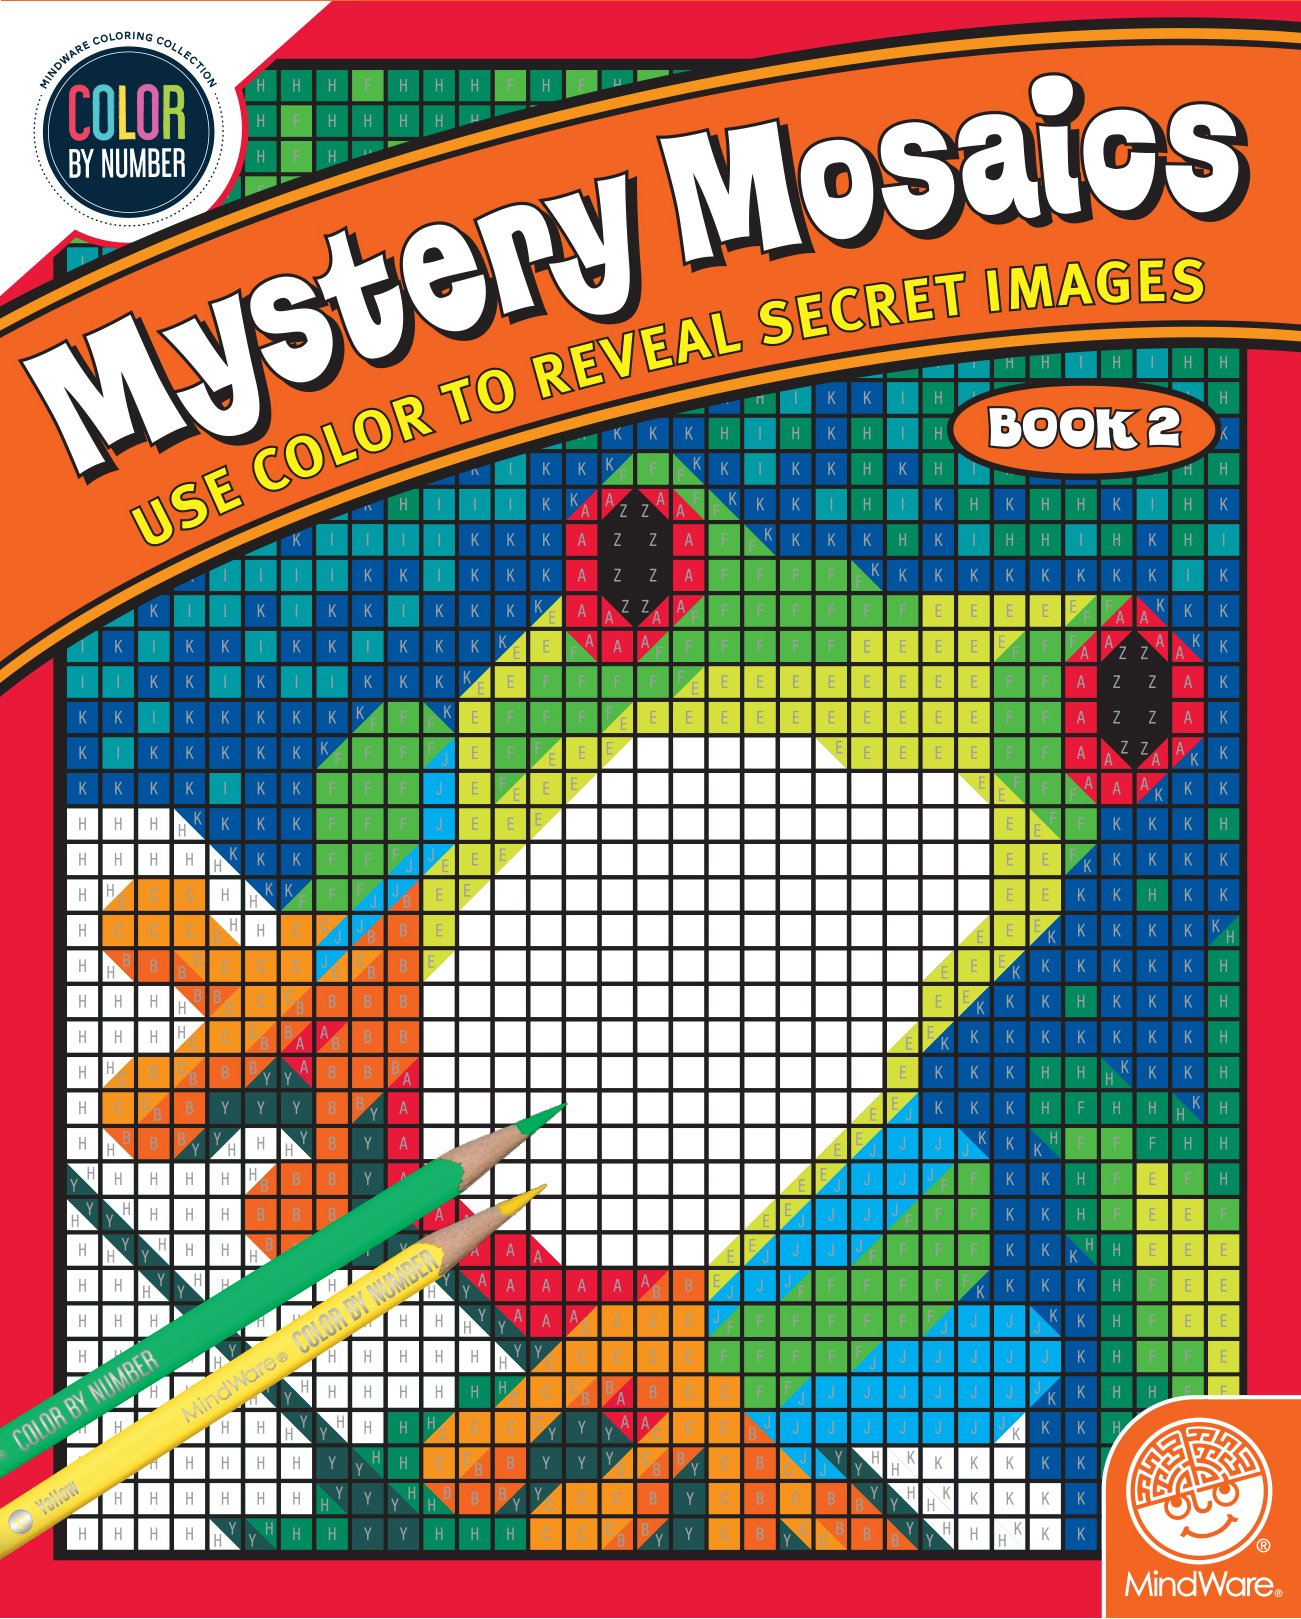 MindWare Color by Number Mystery Mosaics: (Book 2), Multi Color